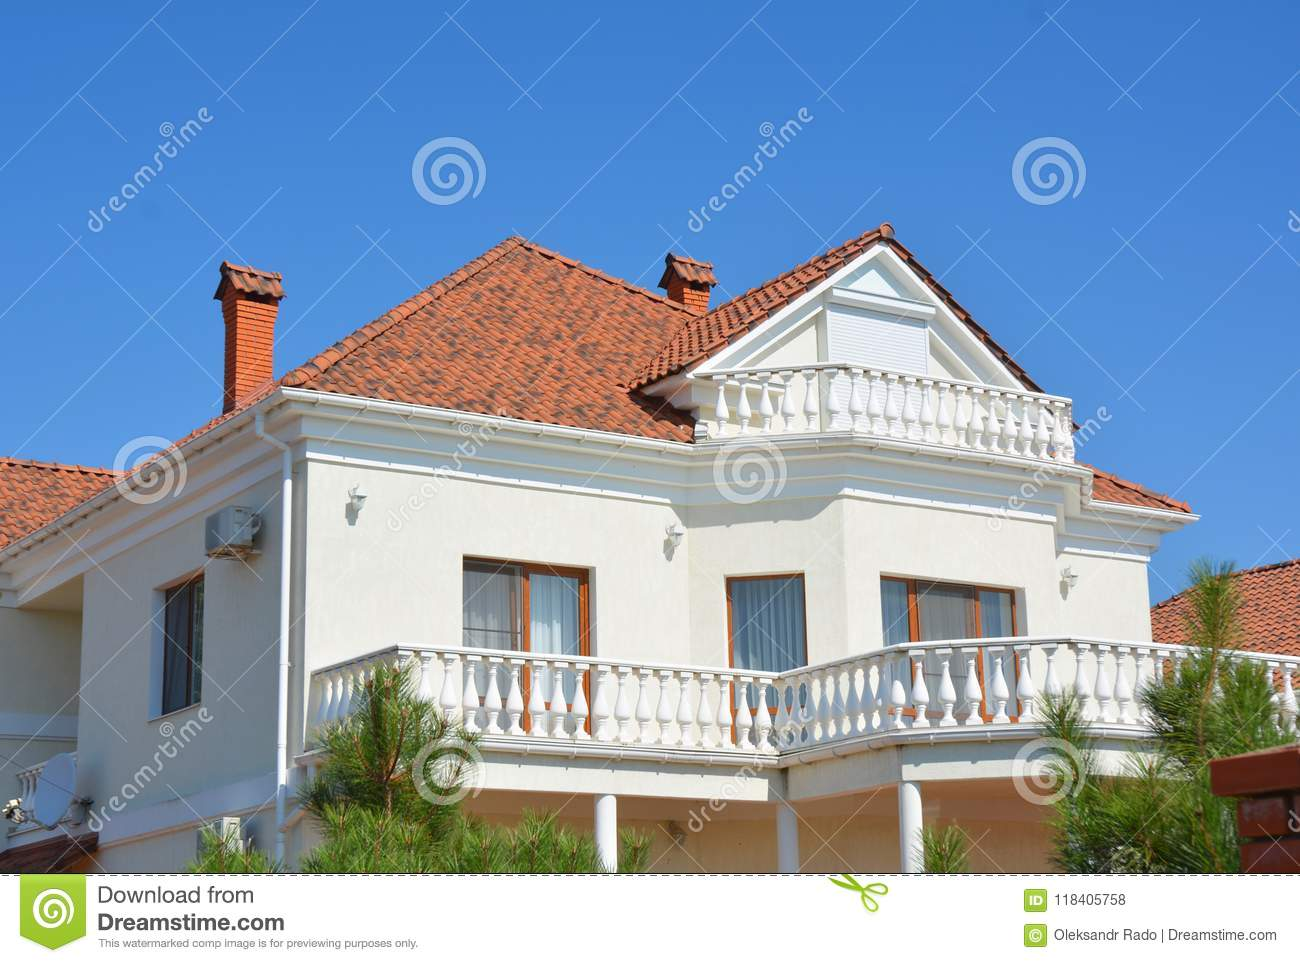 Luxury modern home with attic balcony and clay tiles roof.